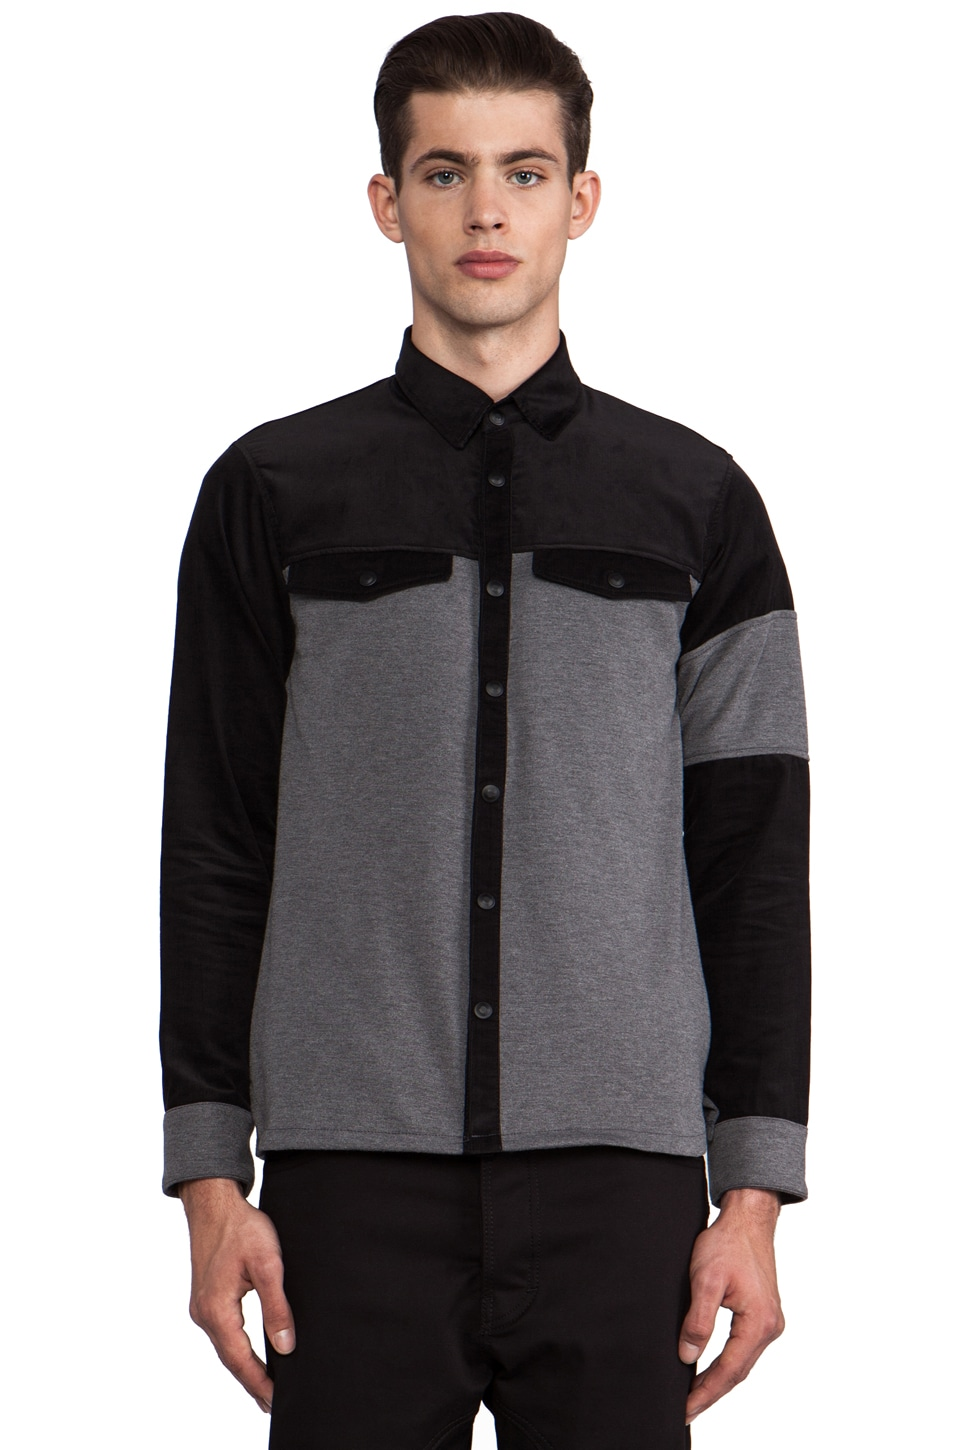 B:Scott Combo Shirt Jacket in Black/Charcoal